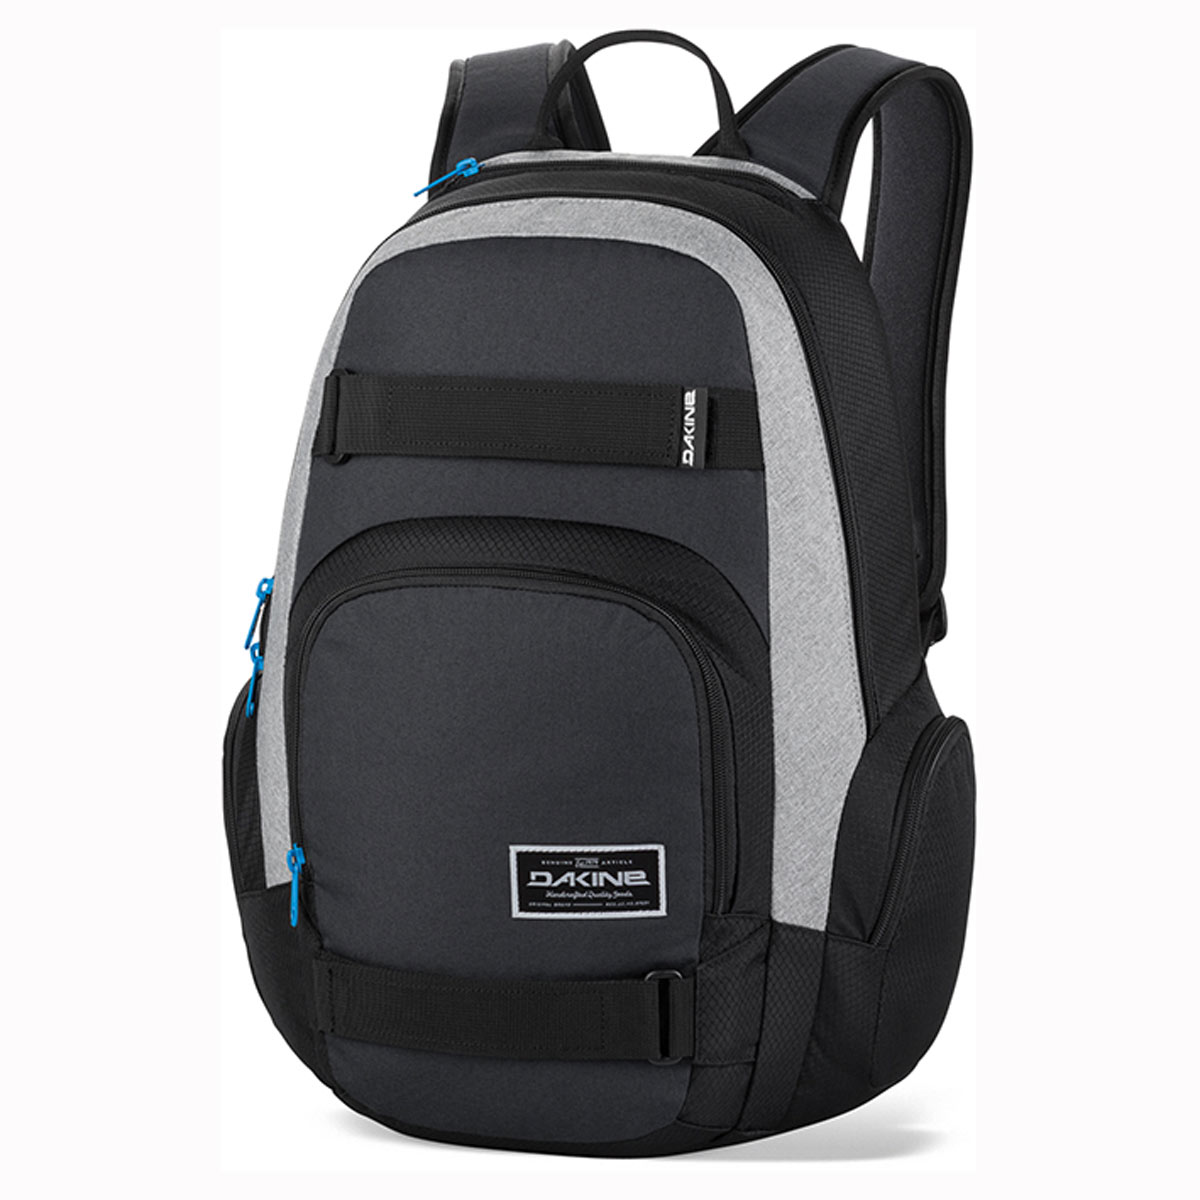 dakine atlas 25l sommer 2016 skate pack rucksack mit 15 laptoptasche 8130004. Black Bedroom Furniture Sets. Home Design Ideas